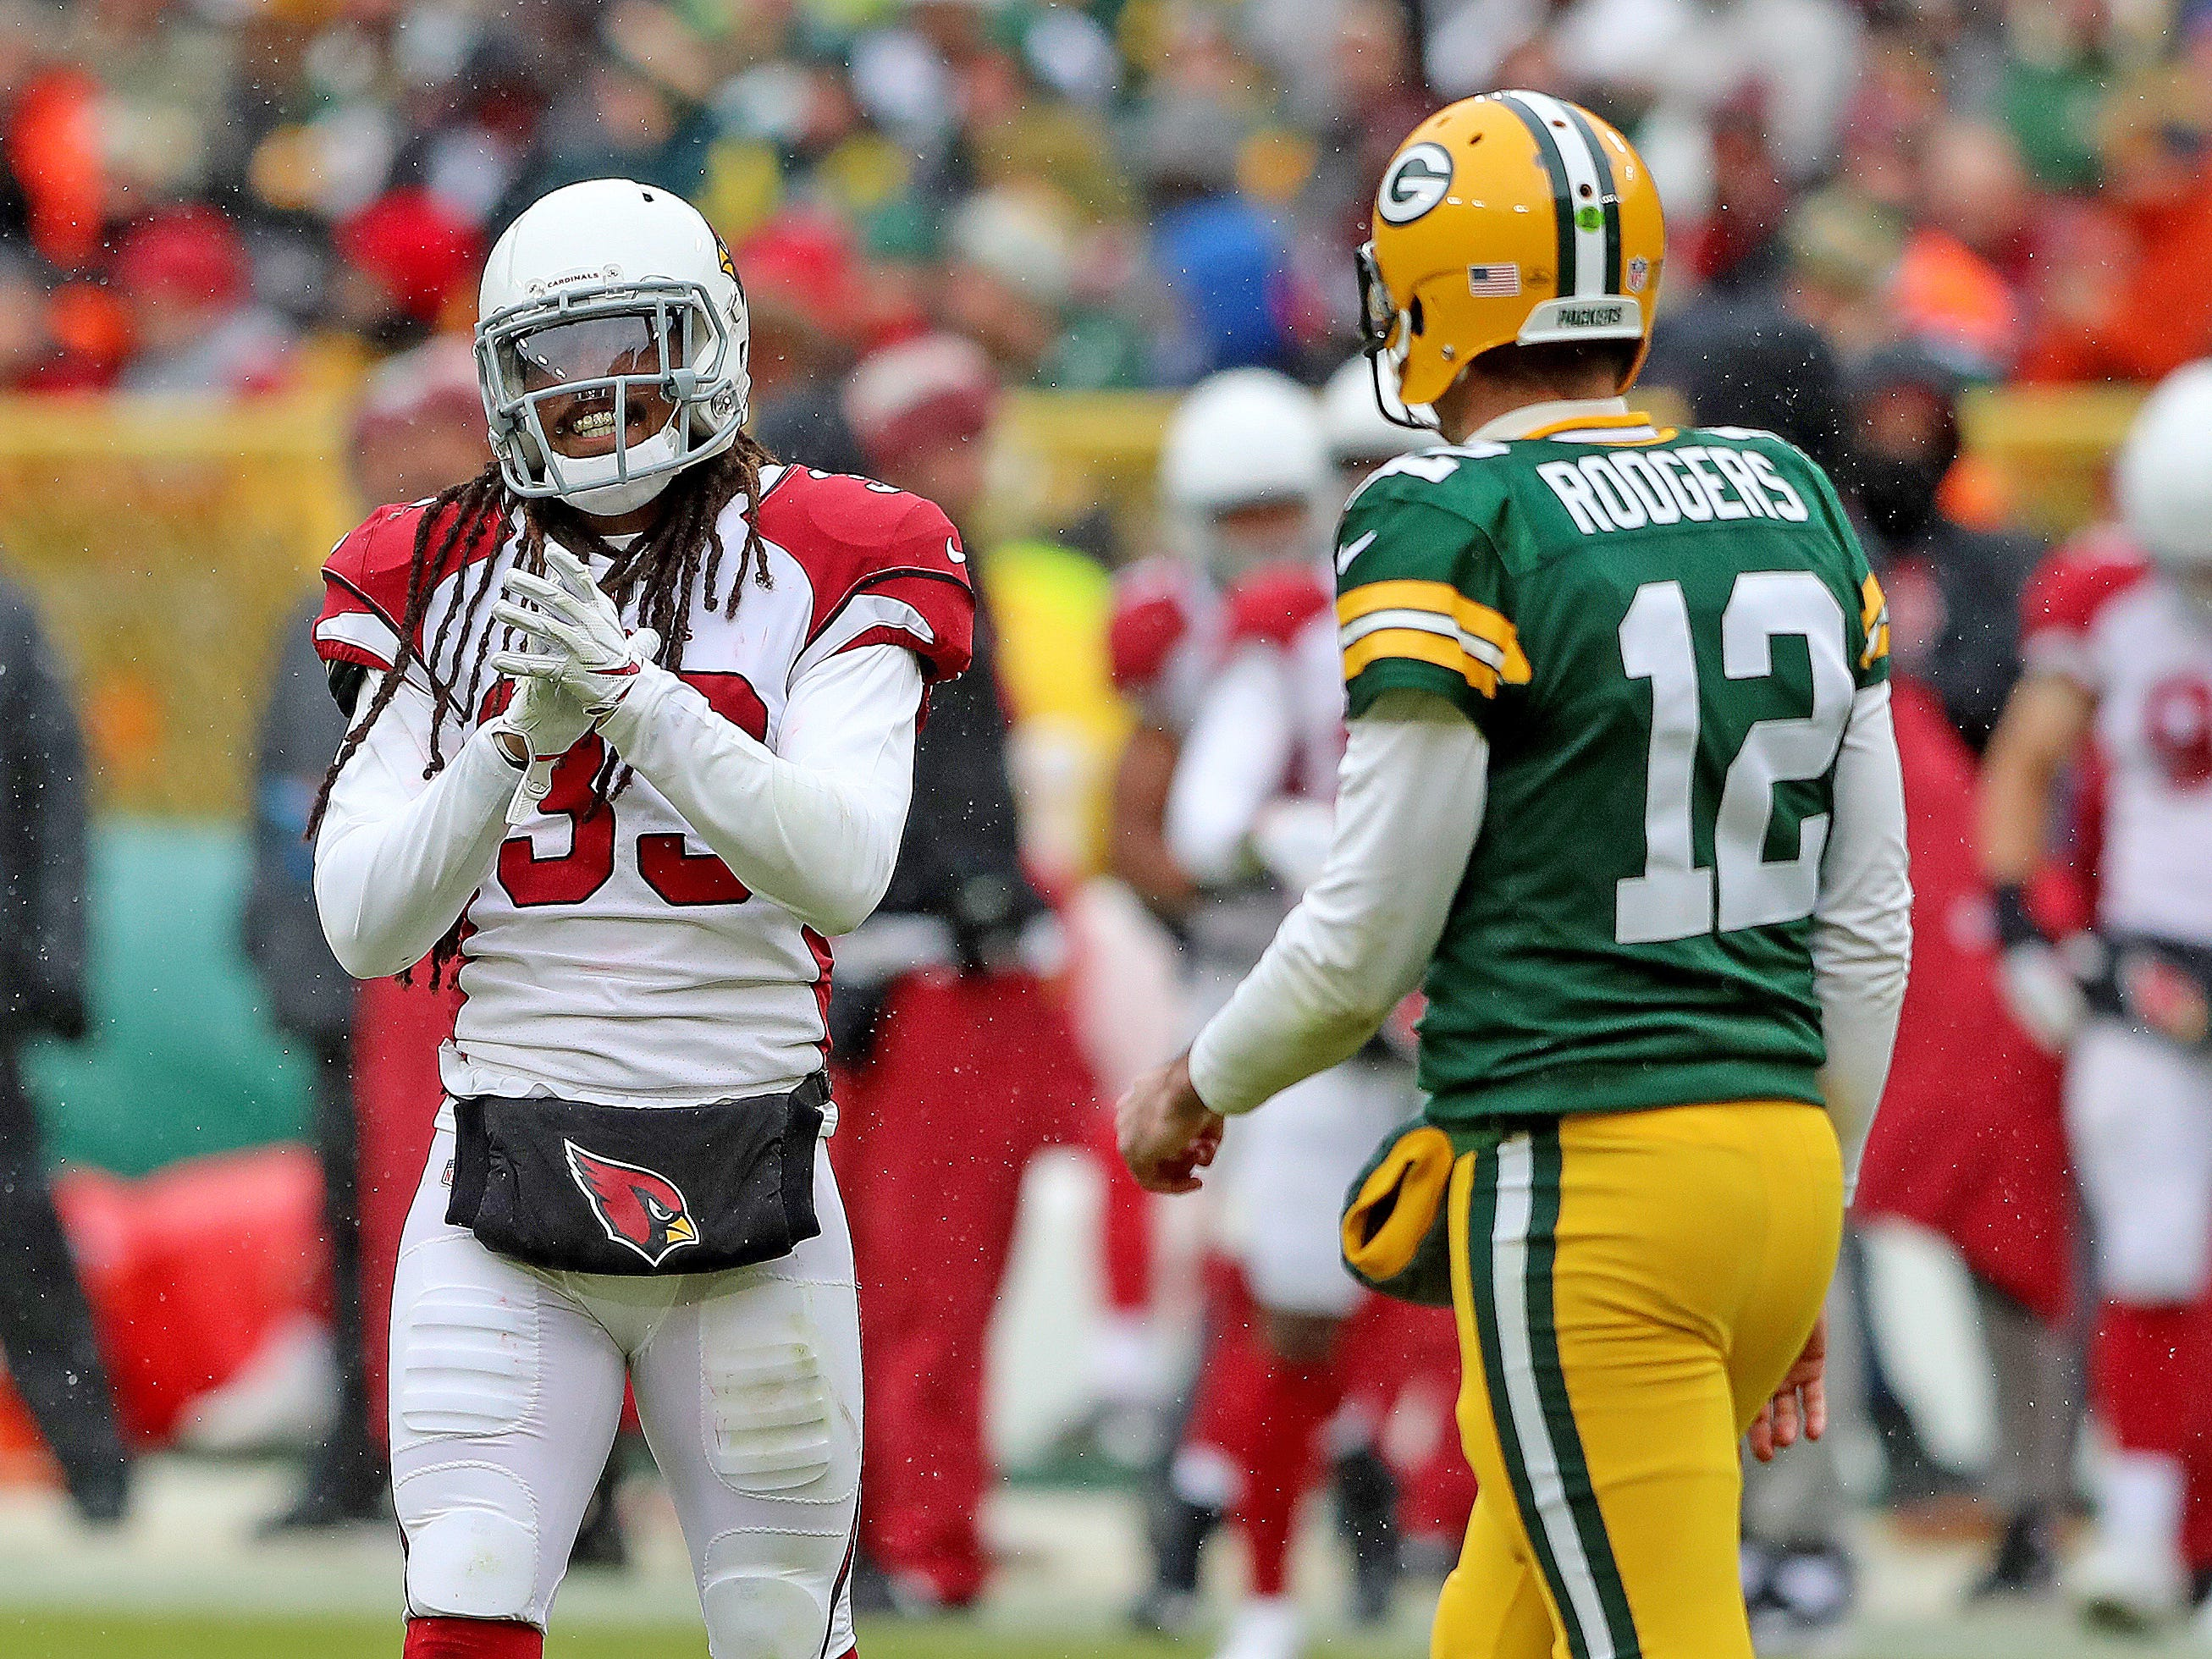 Green Bay Packers quarterback Aaron Rodgers (12) watches as defensive back Tre Boston (33) applauds a third down incompletion against the Arizona Cardinals Sunday, December 2, 2018 at Lambeau Field in Green Bay, Wis. Jim Matthews/USA TODAY NETWORK-Wis